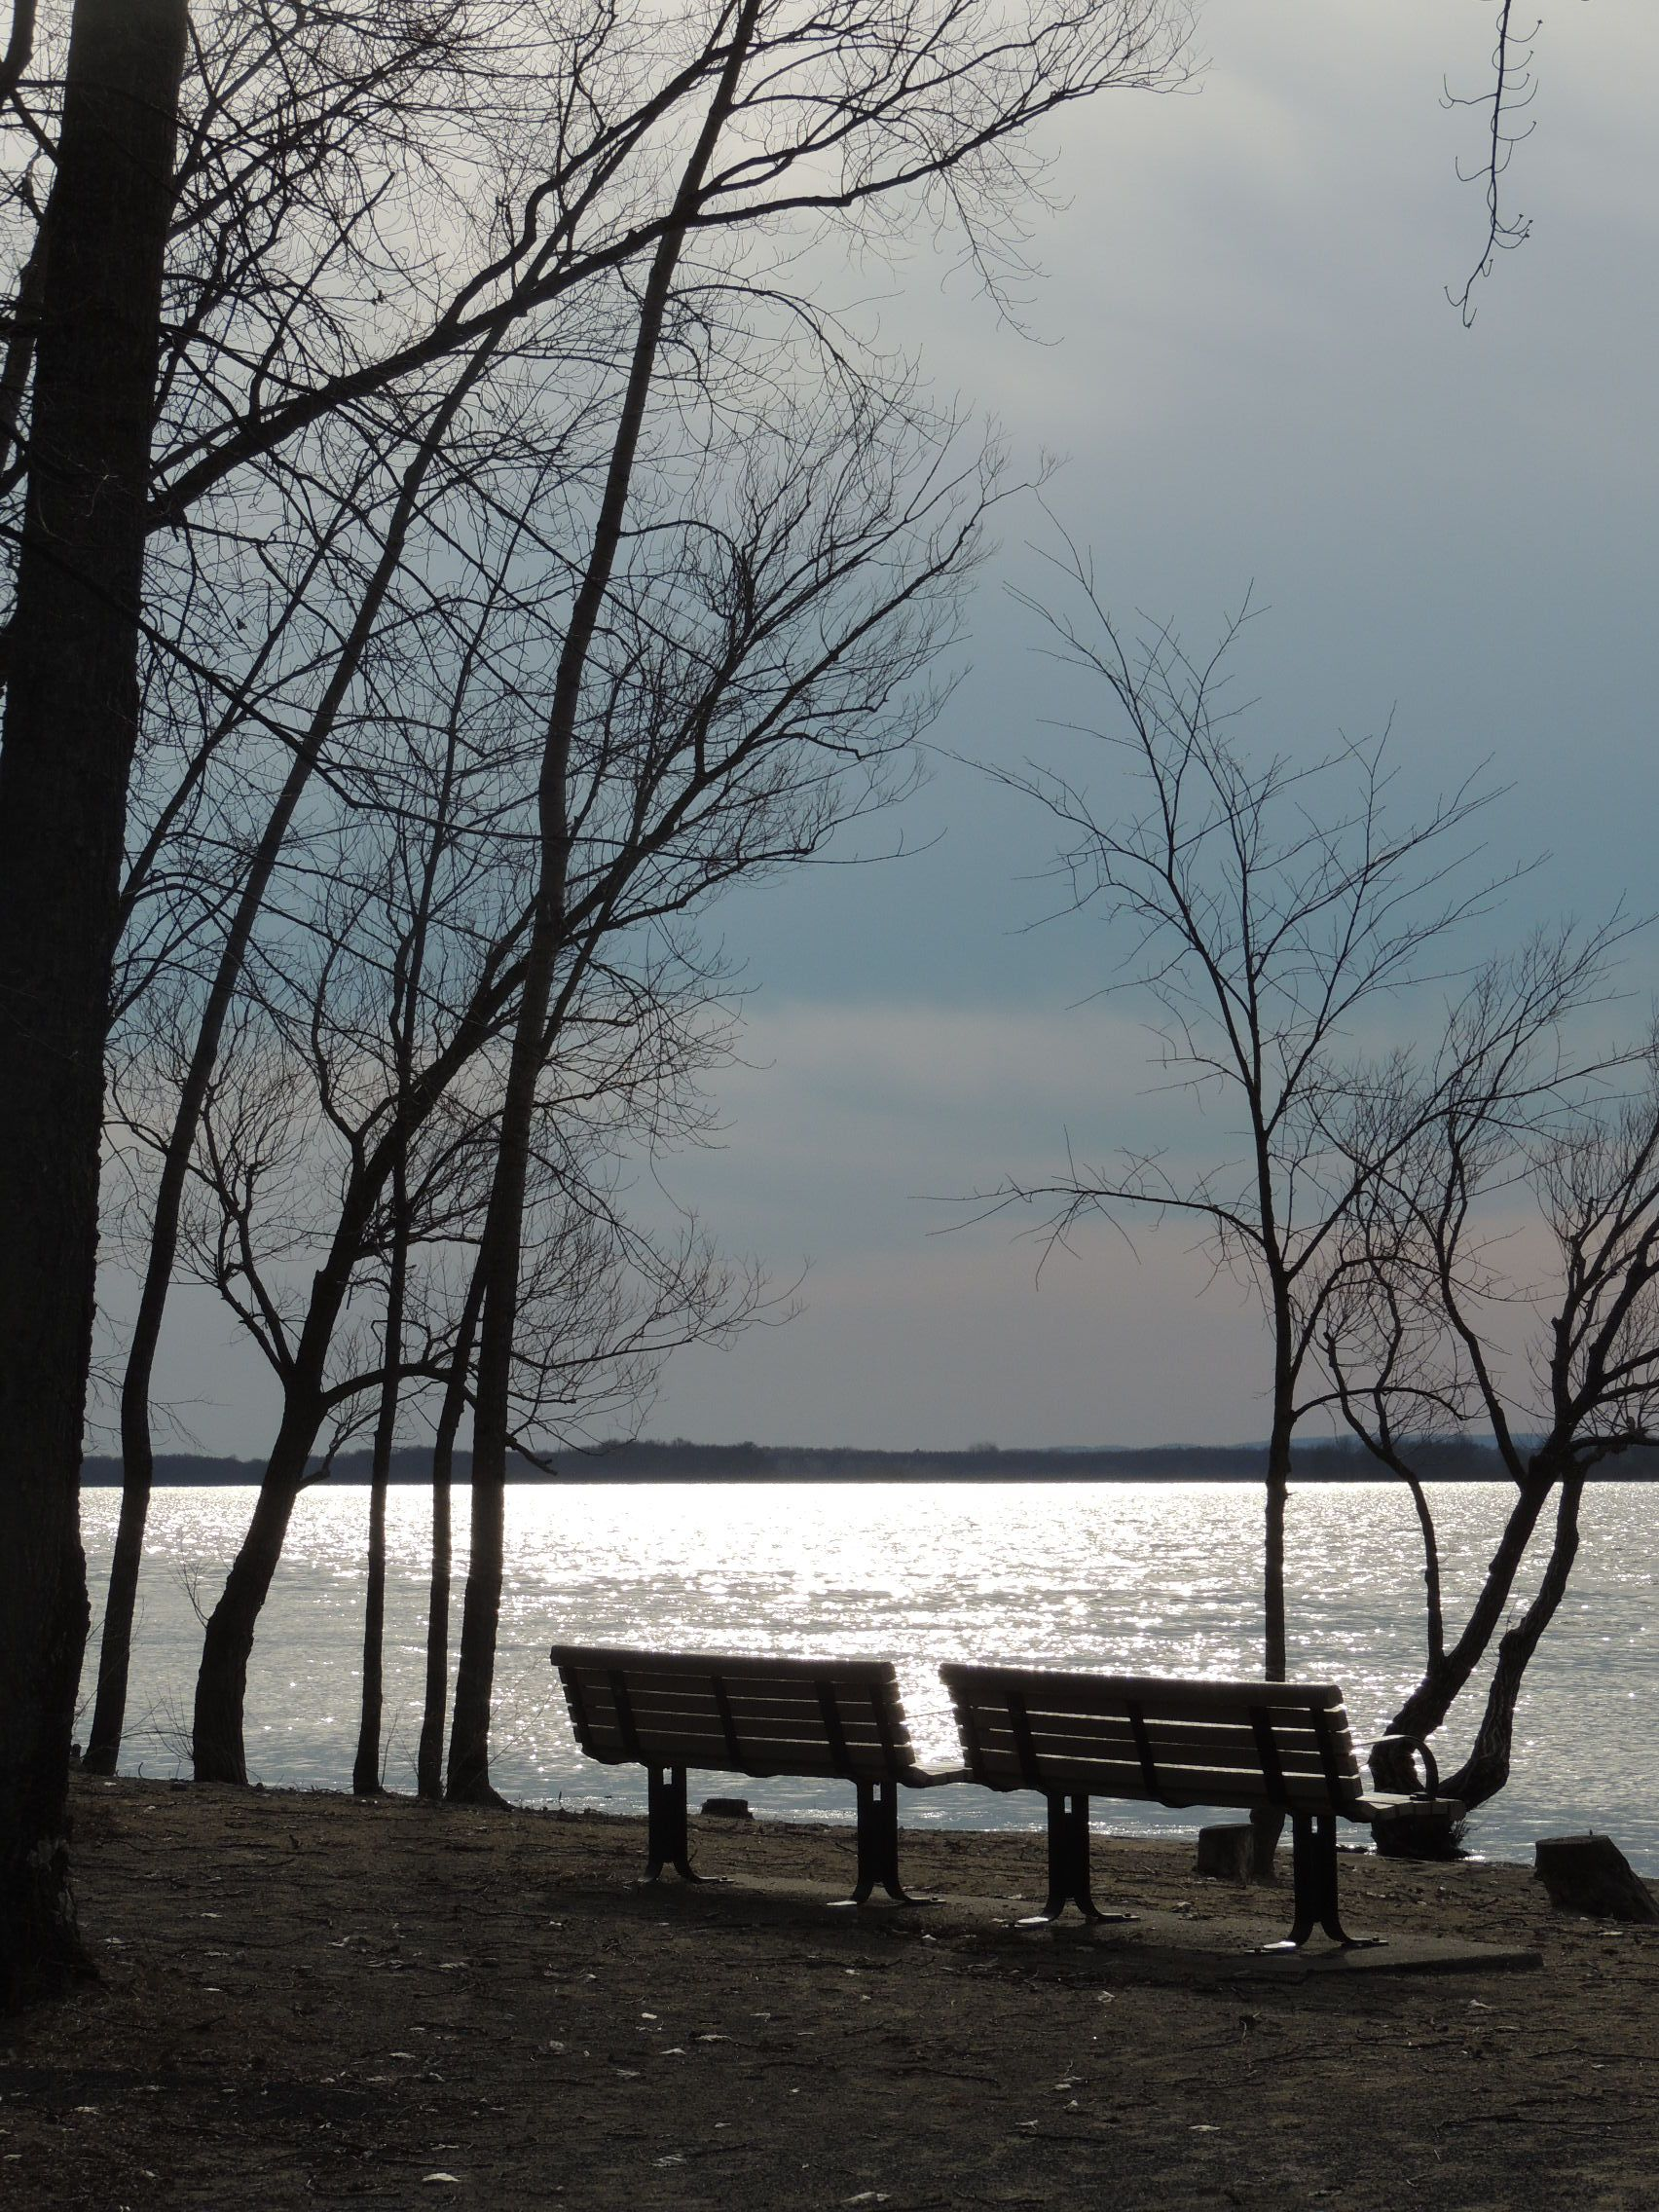 Pin By Annie Yue On Lonely Bench Winter And Fall Bench Ottawa